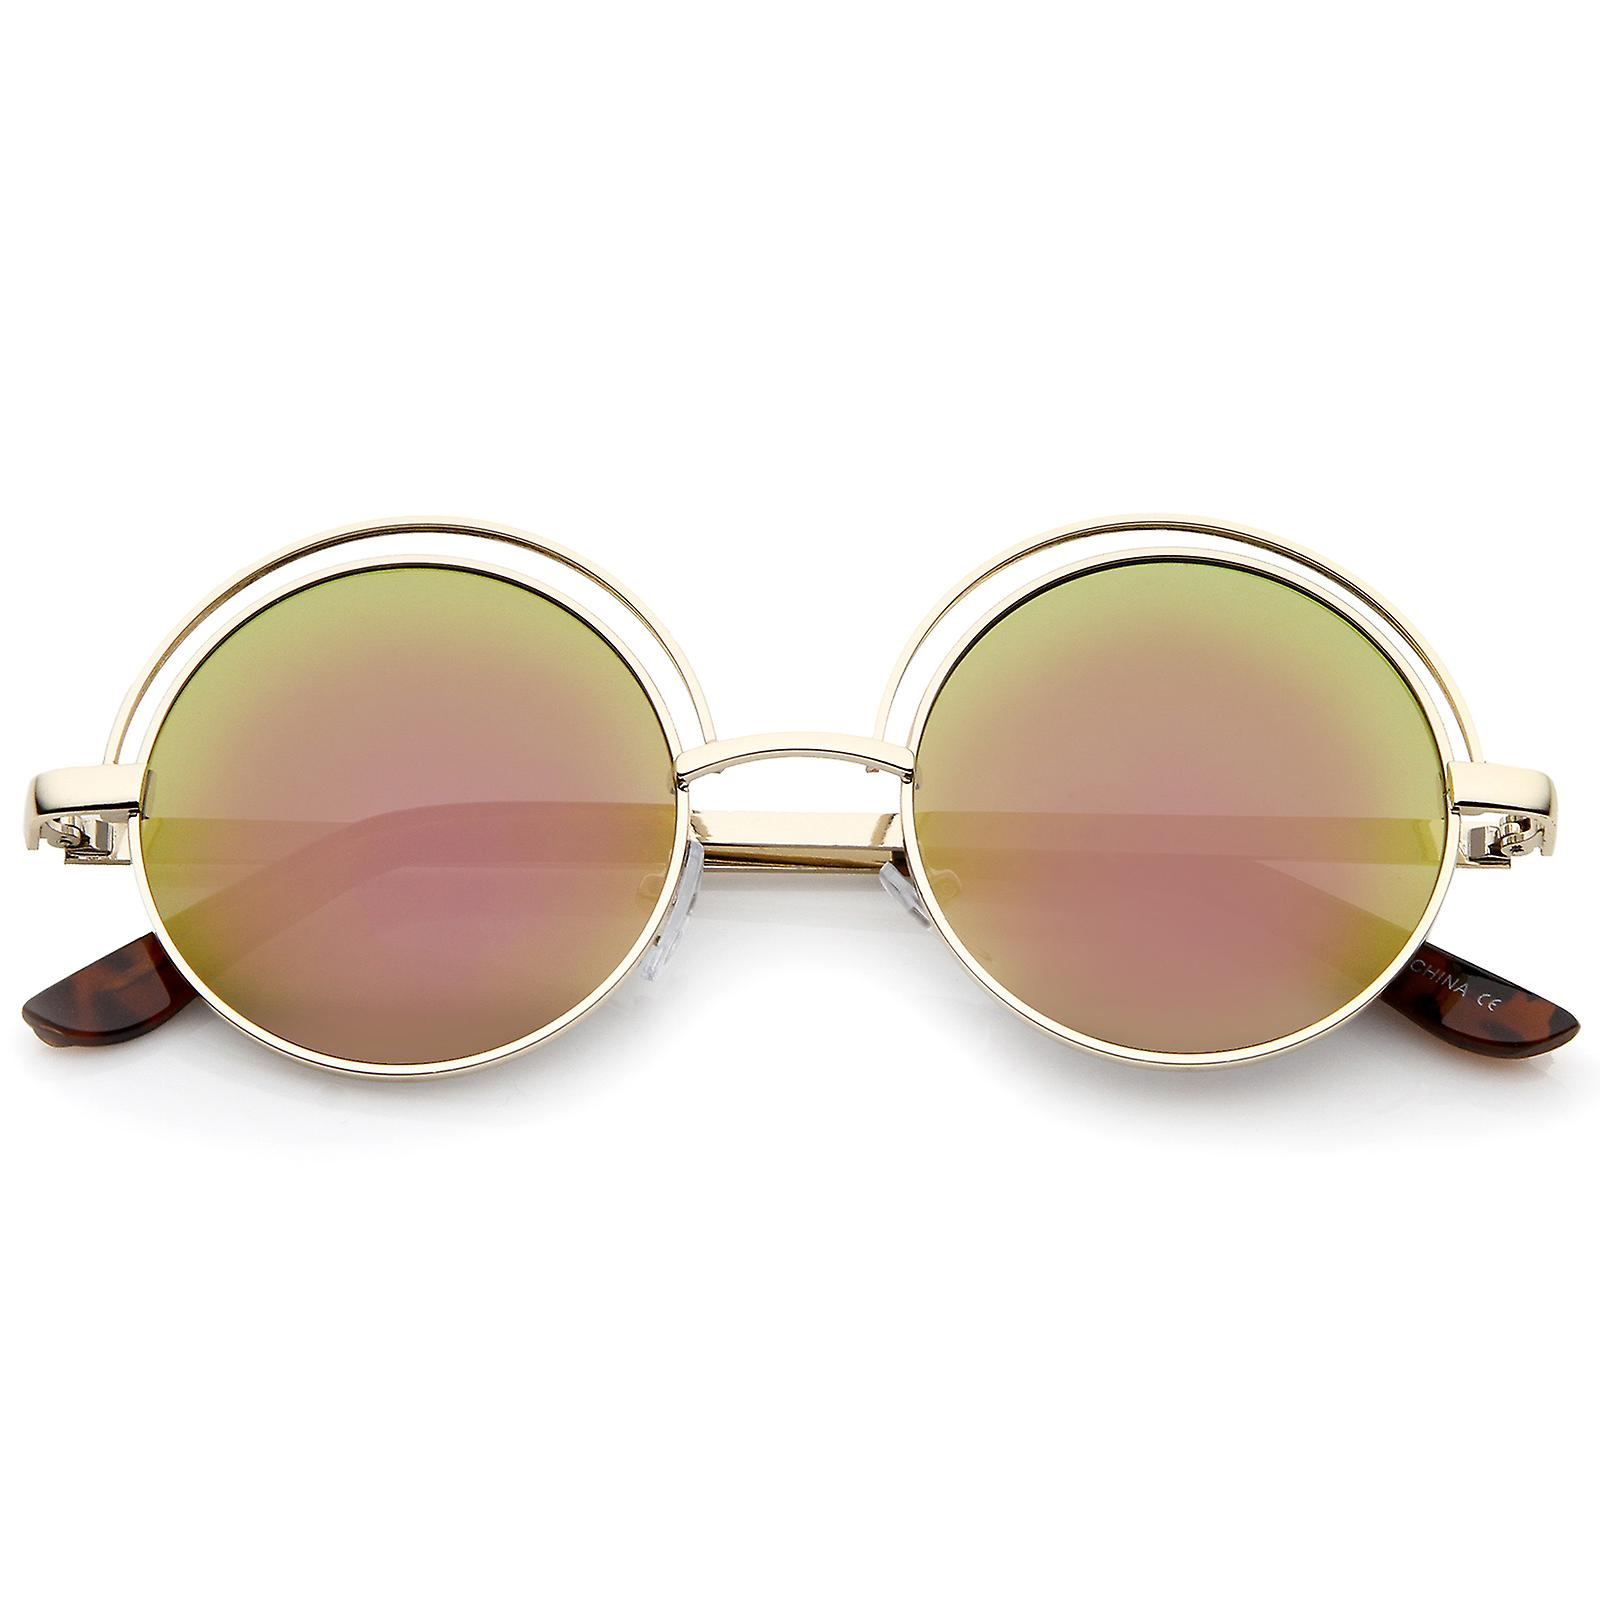 ff498c0dc8512 Retro Open Metal Colored Mirror Flat Lens Round Sunglasses 48mm